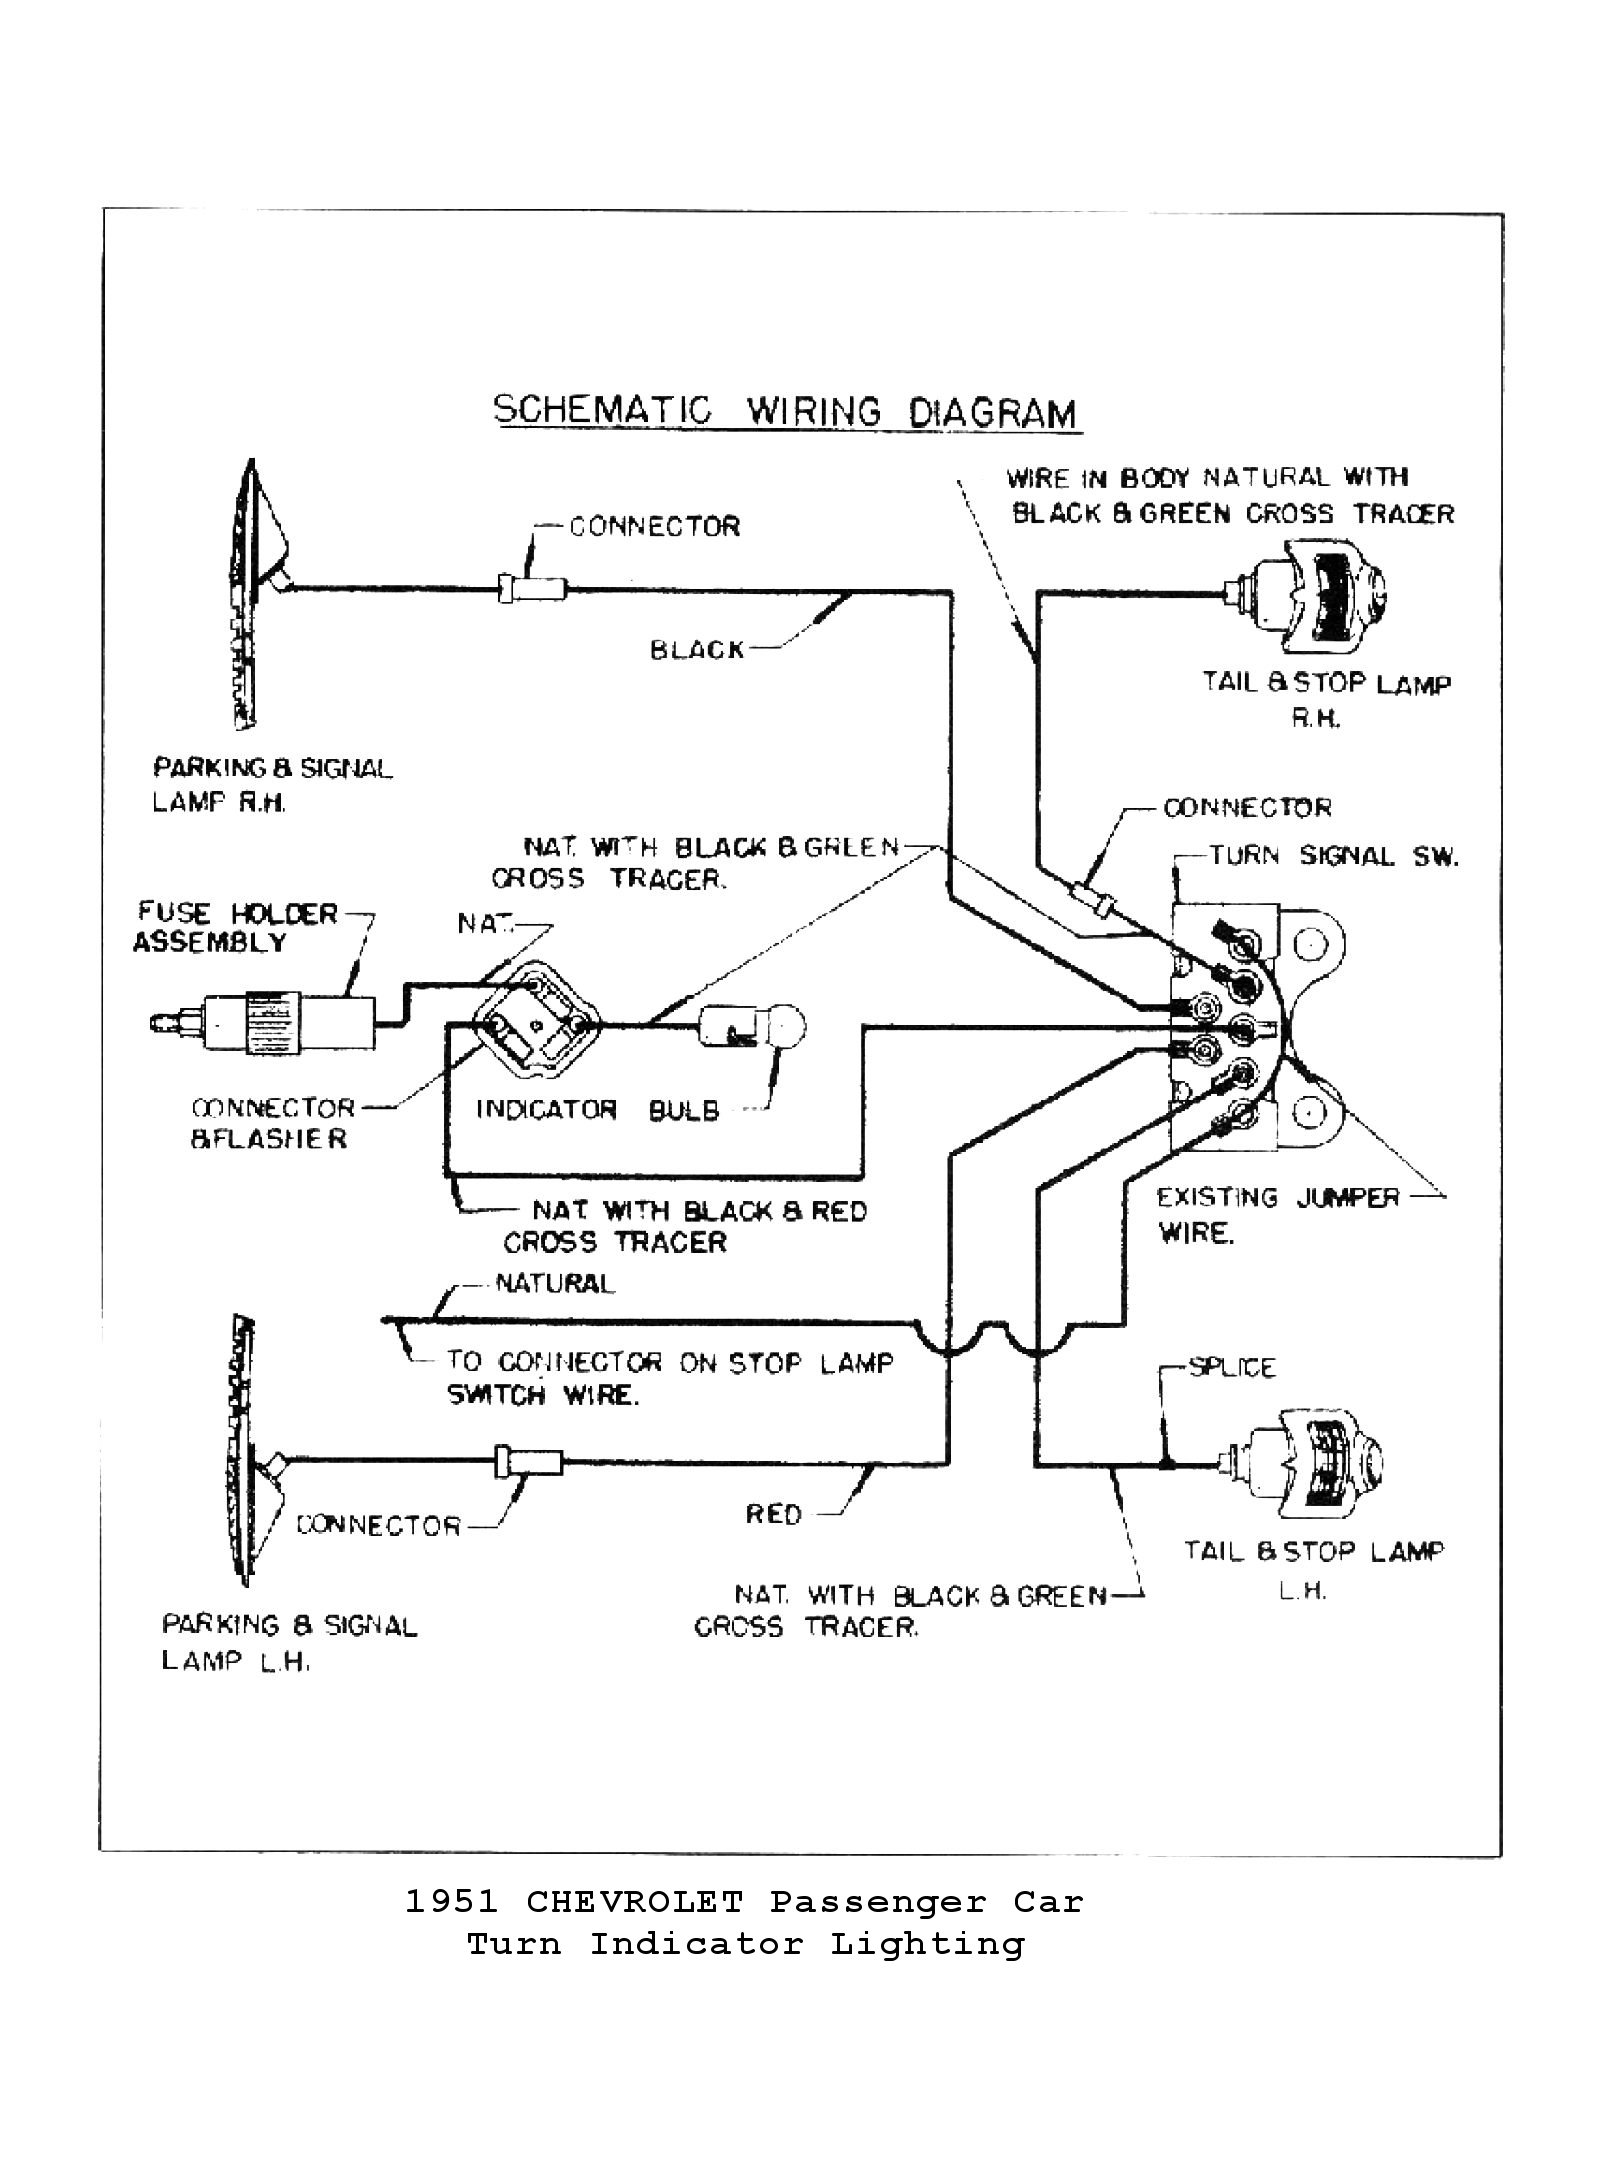 72 chevy pu c10 painless wiring harness diagram